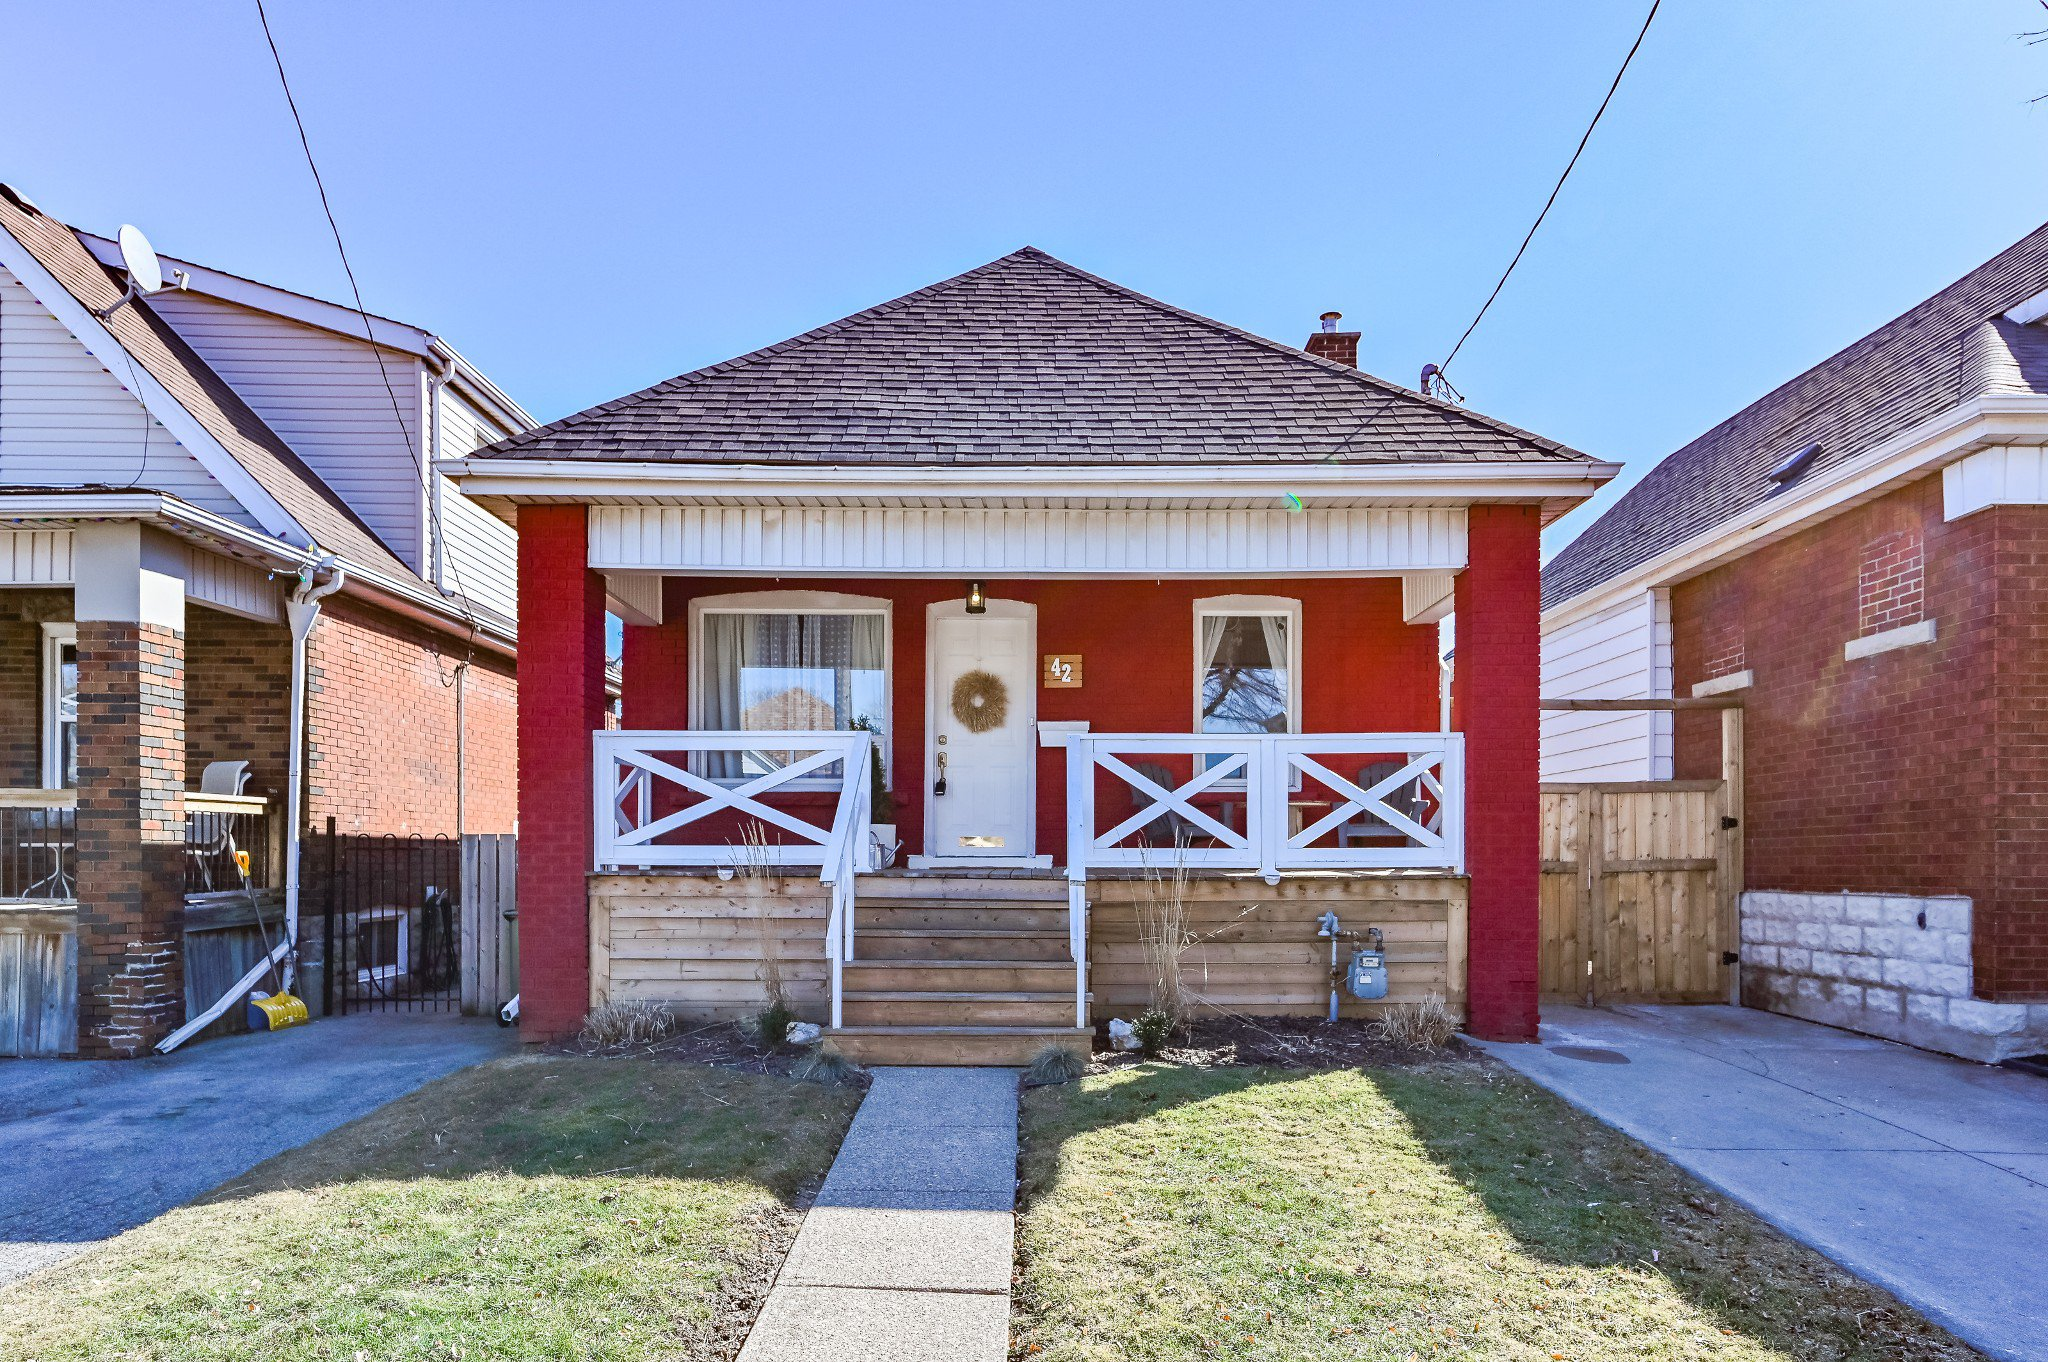 Main Photo: 42 Barons Avenue in Hamilton: House for sale : MLS®# H4074014